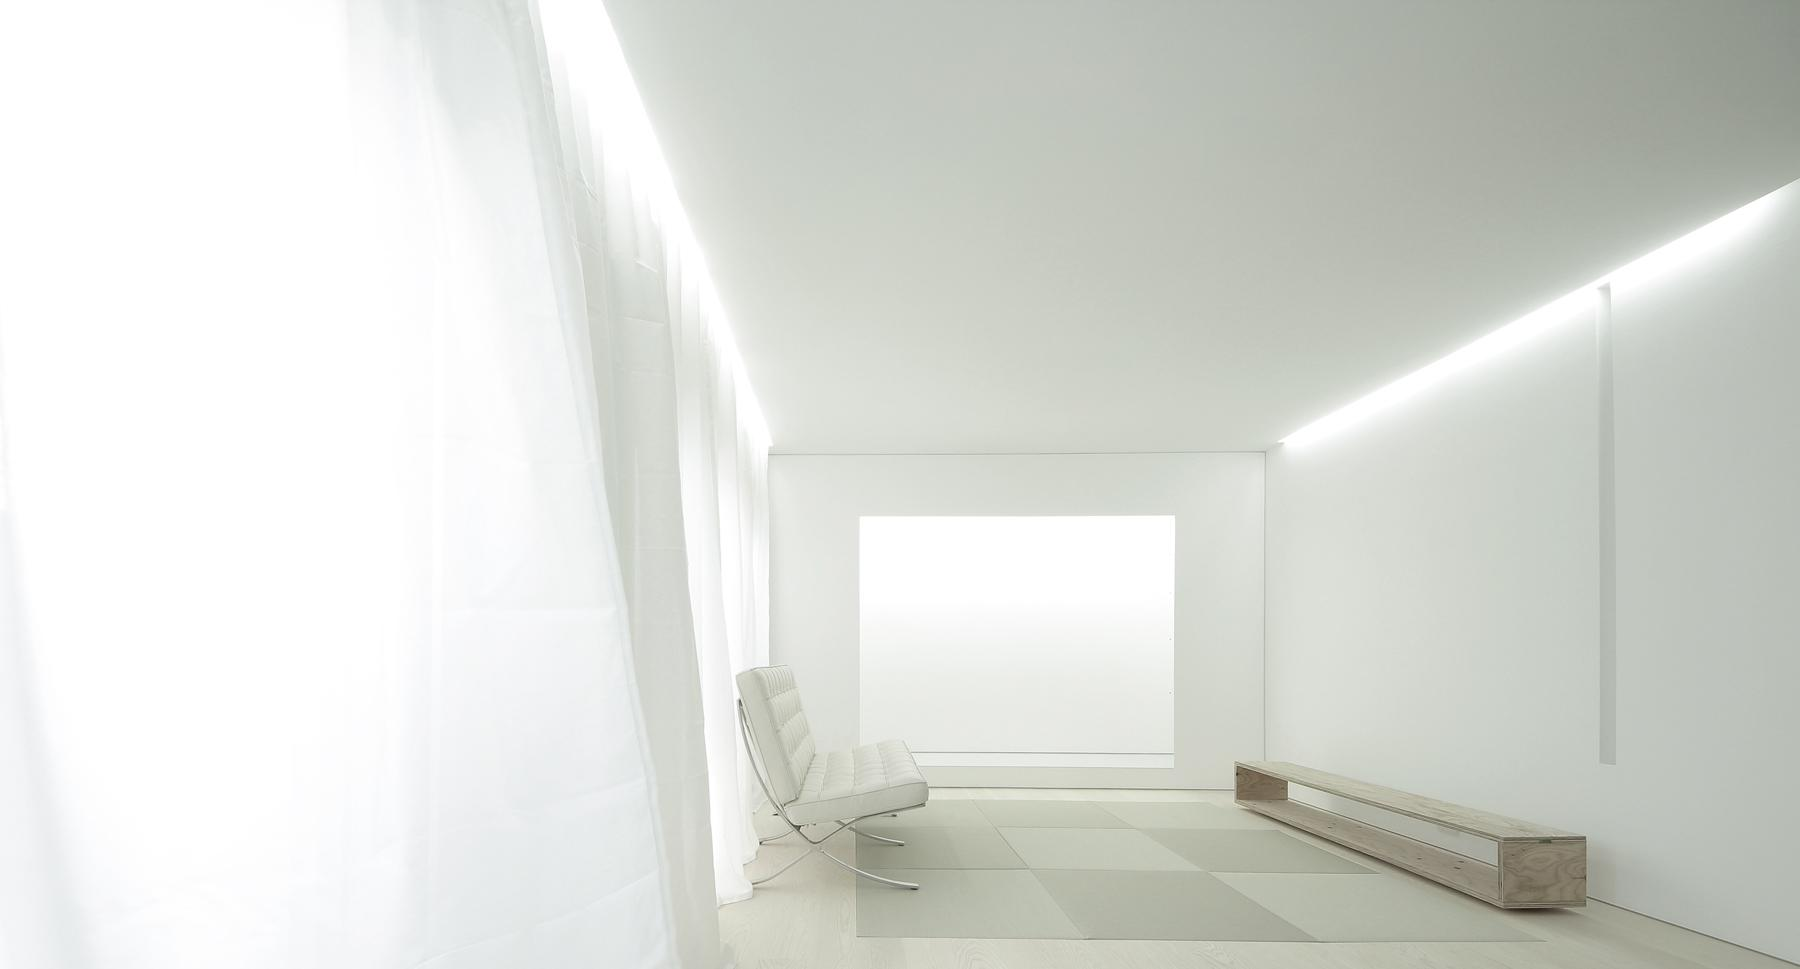 House for an installation